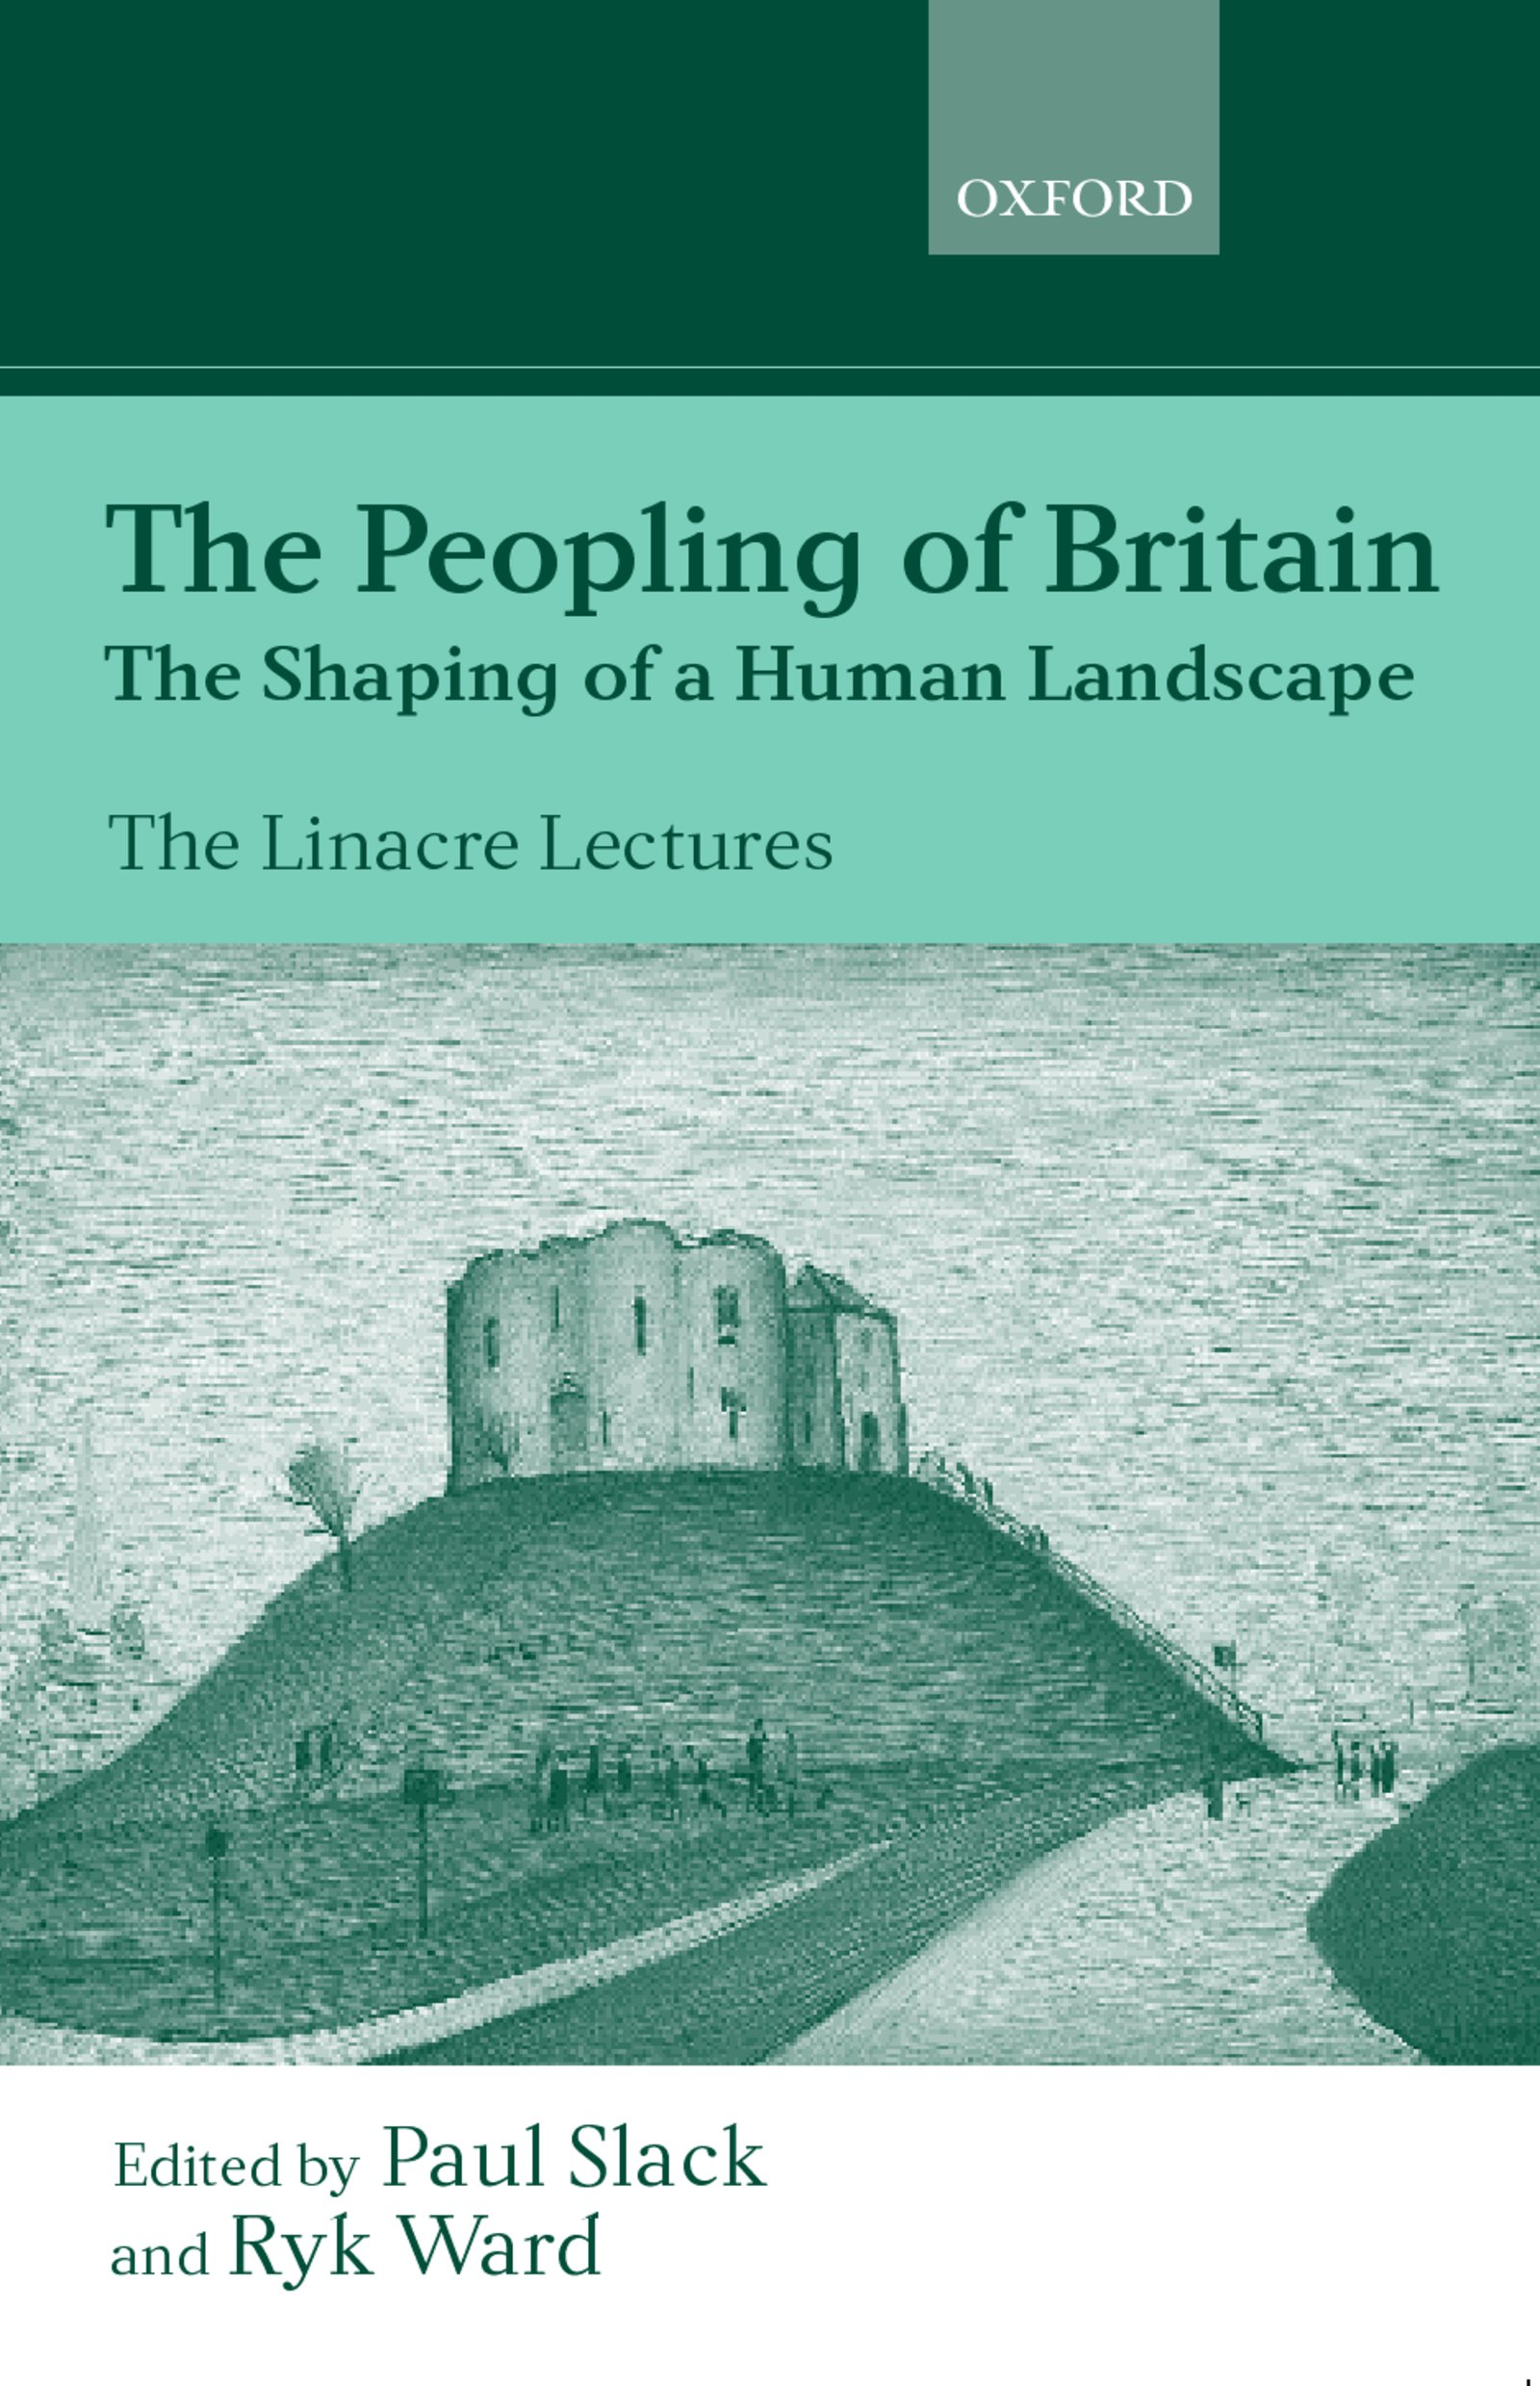 The Peopling of BritainThe Shaping of a Human Landscape